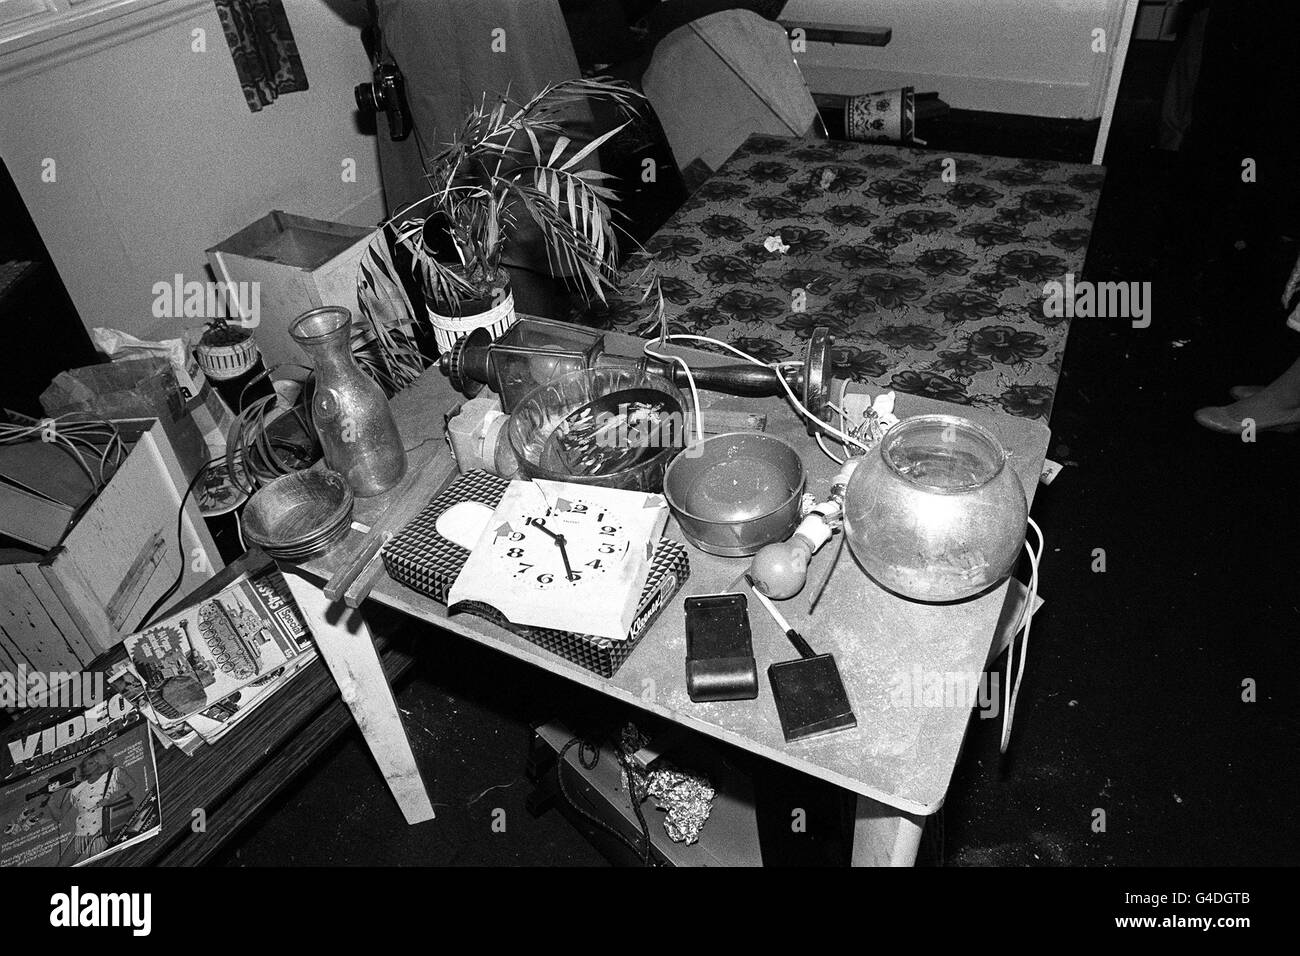 Pa News Photo 15 11 83 The Second Floor Flat Of Mass Murderer Dennis Stock Photo Alamy